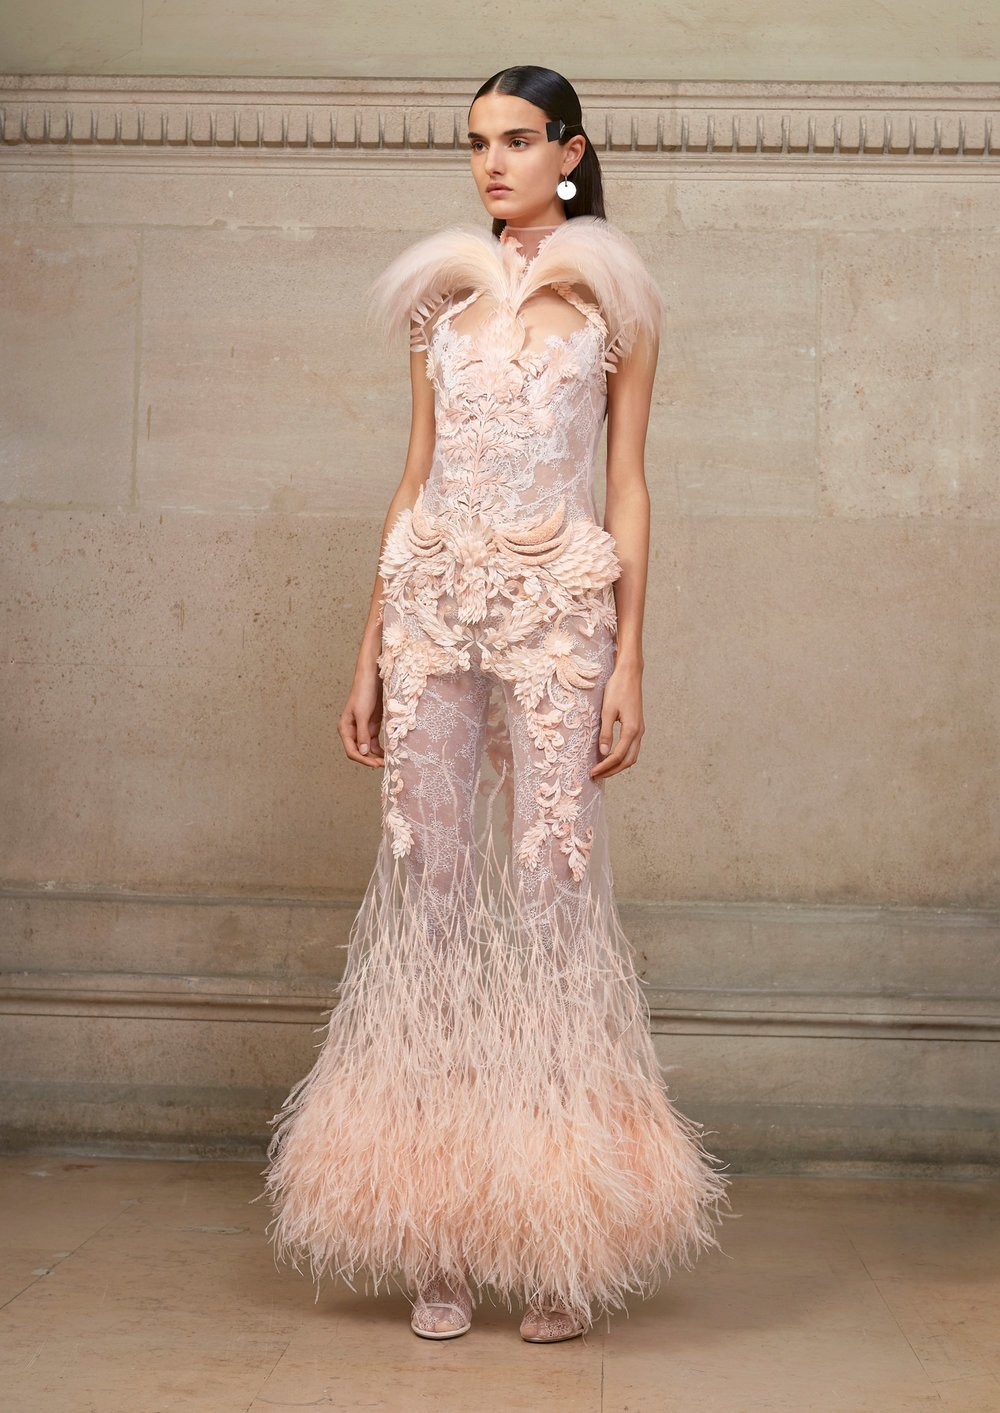 13-givenchy-couture-spring-2017.jpg